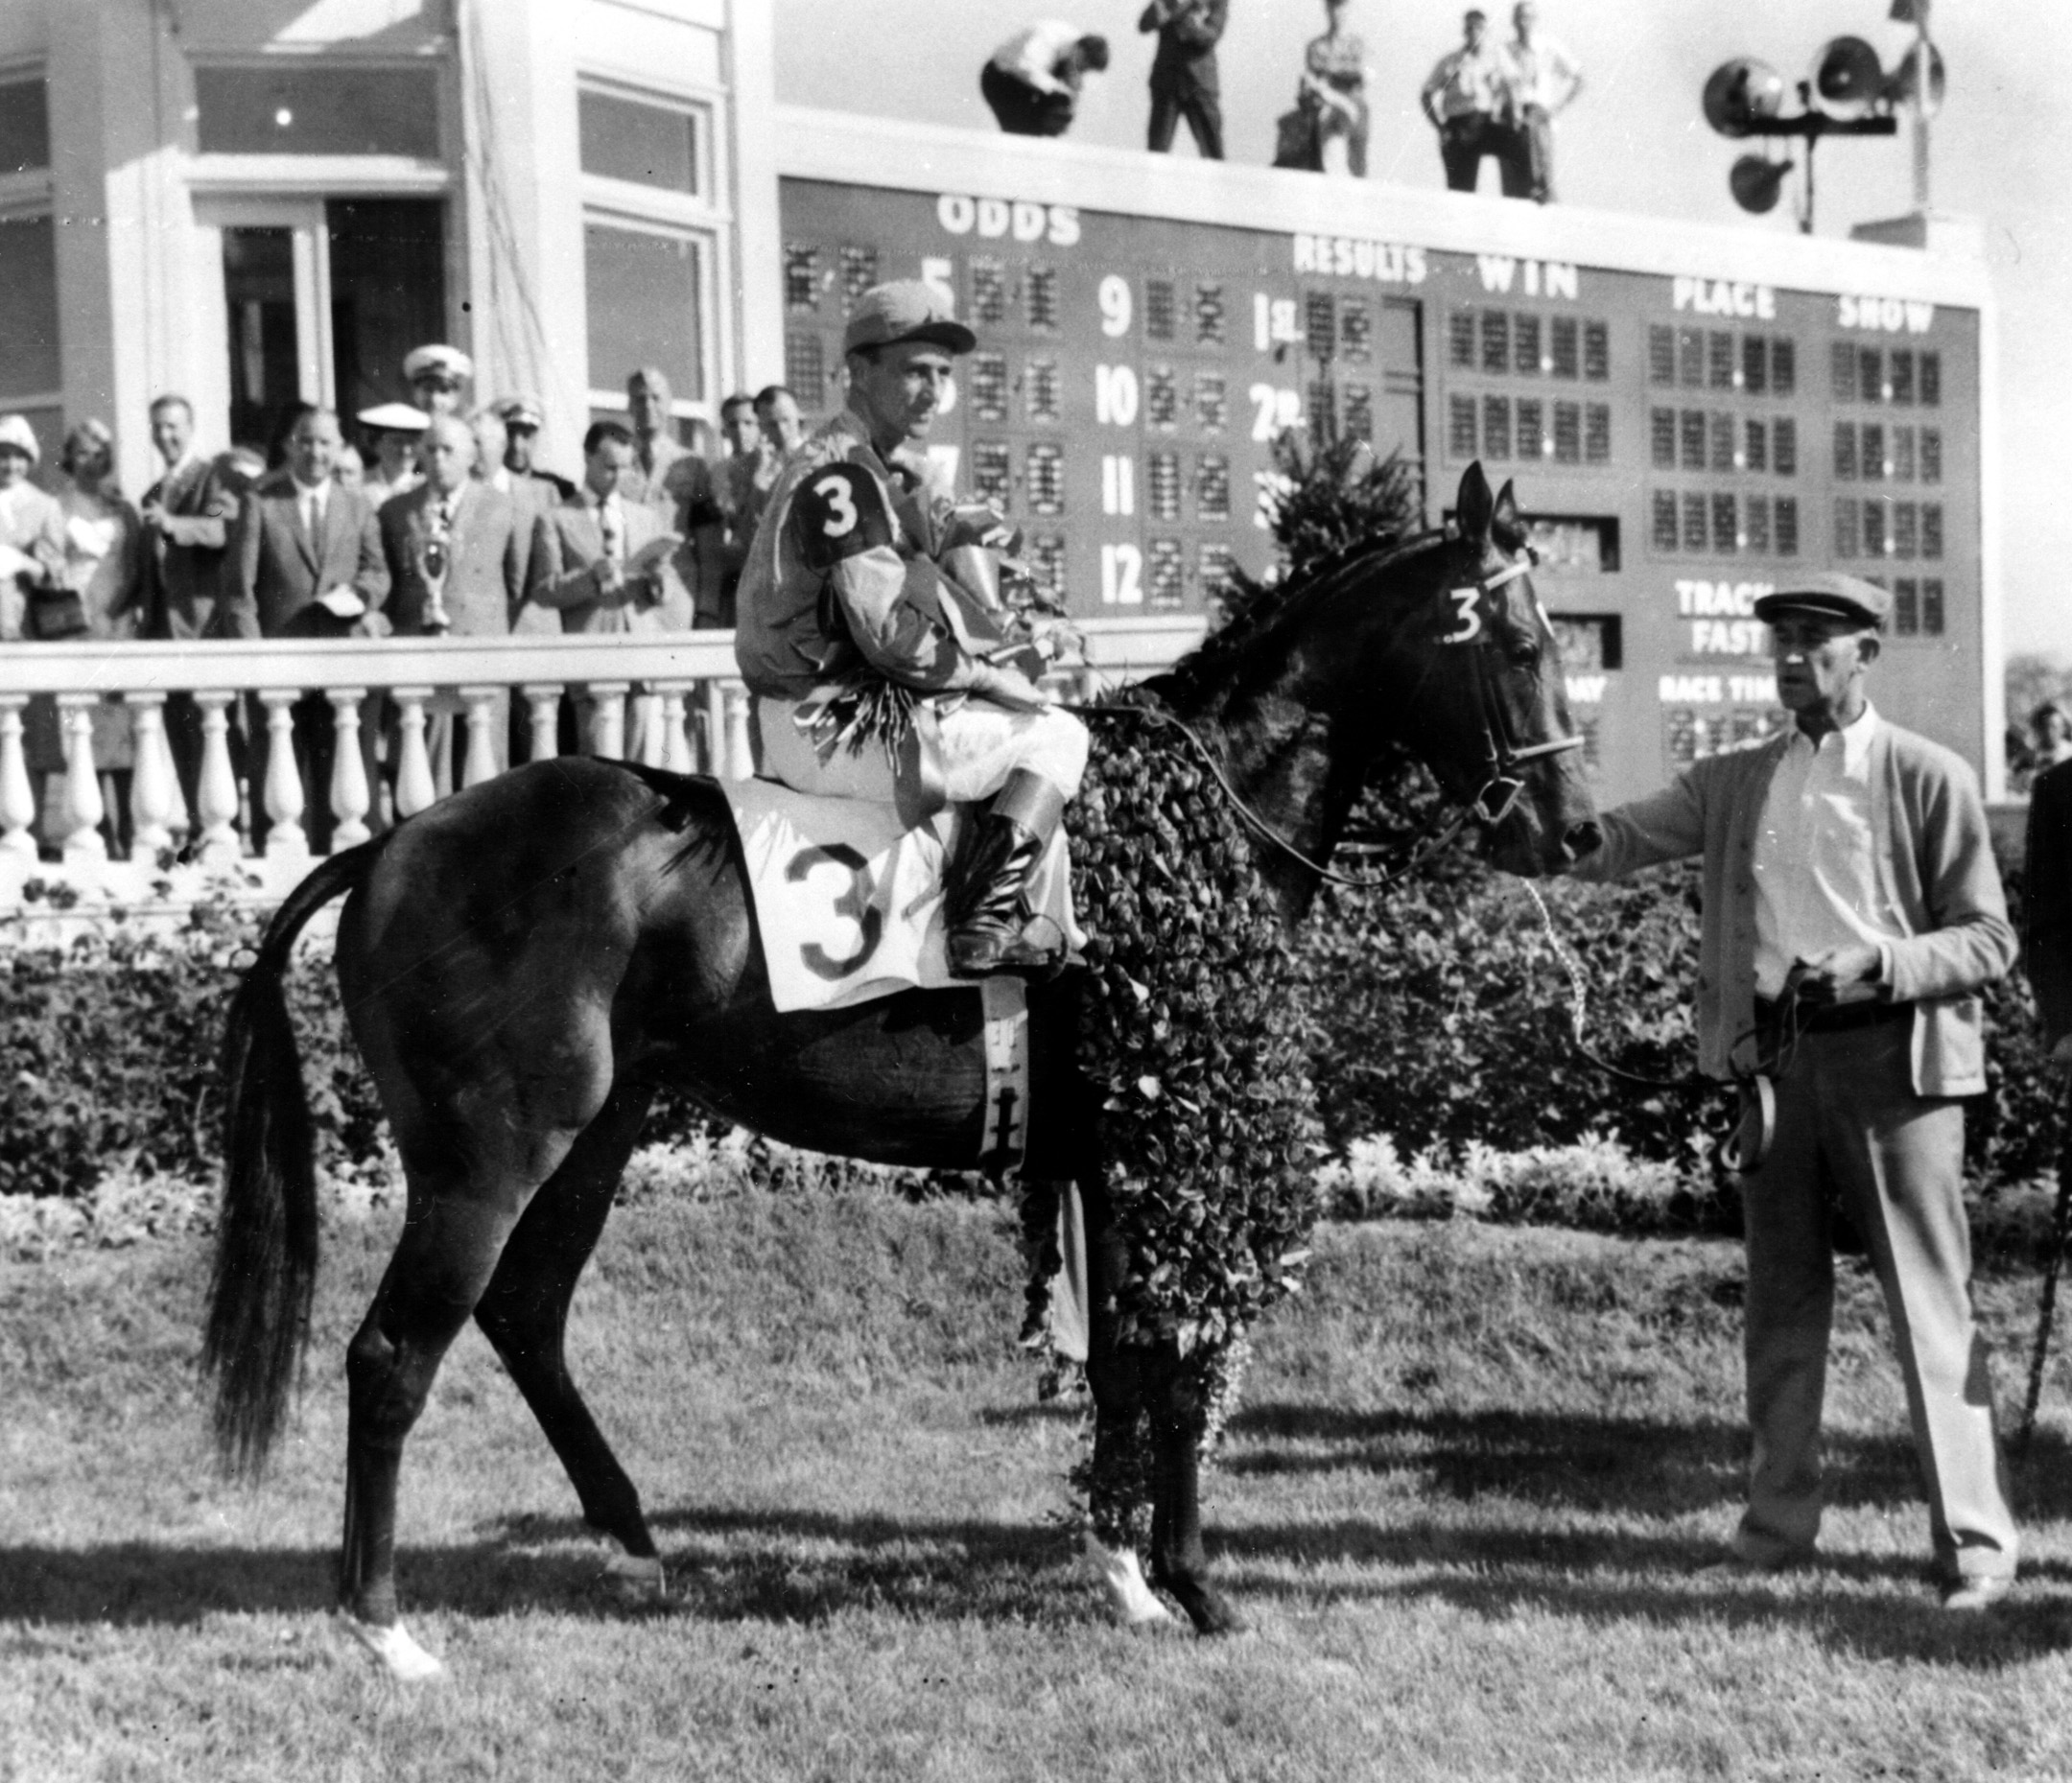 Needles (Dave Erb up) in the winner's circle for the 1956 Kentucky Derby (Keeneland Library Morgan Collection/Museum Collection)